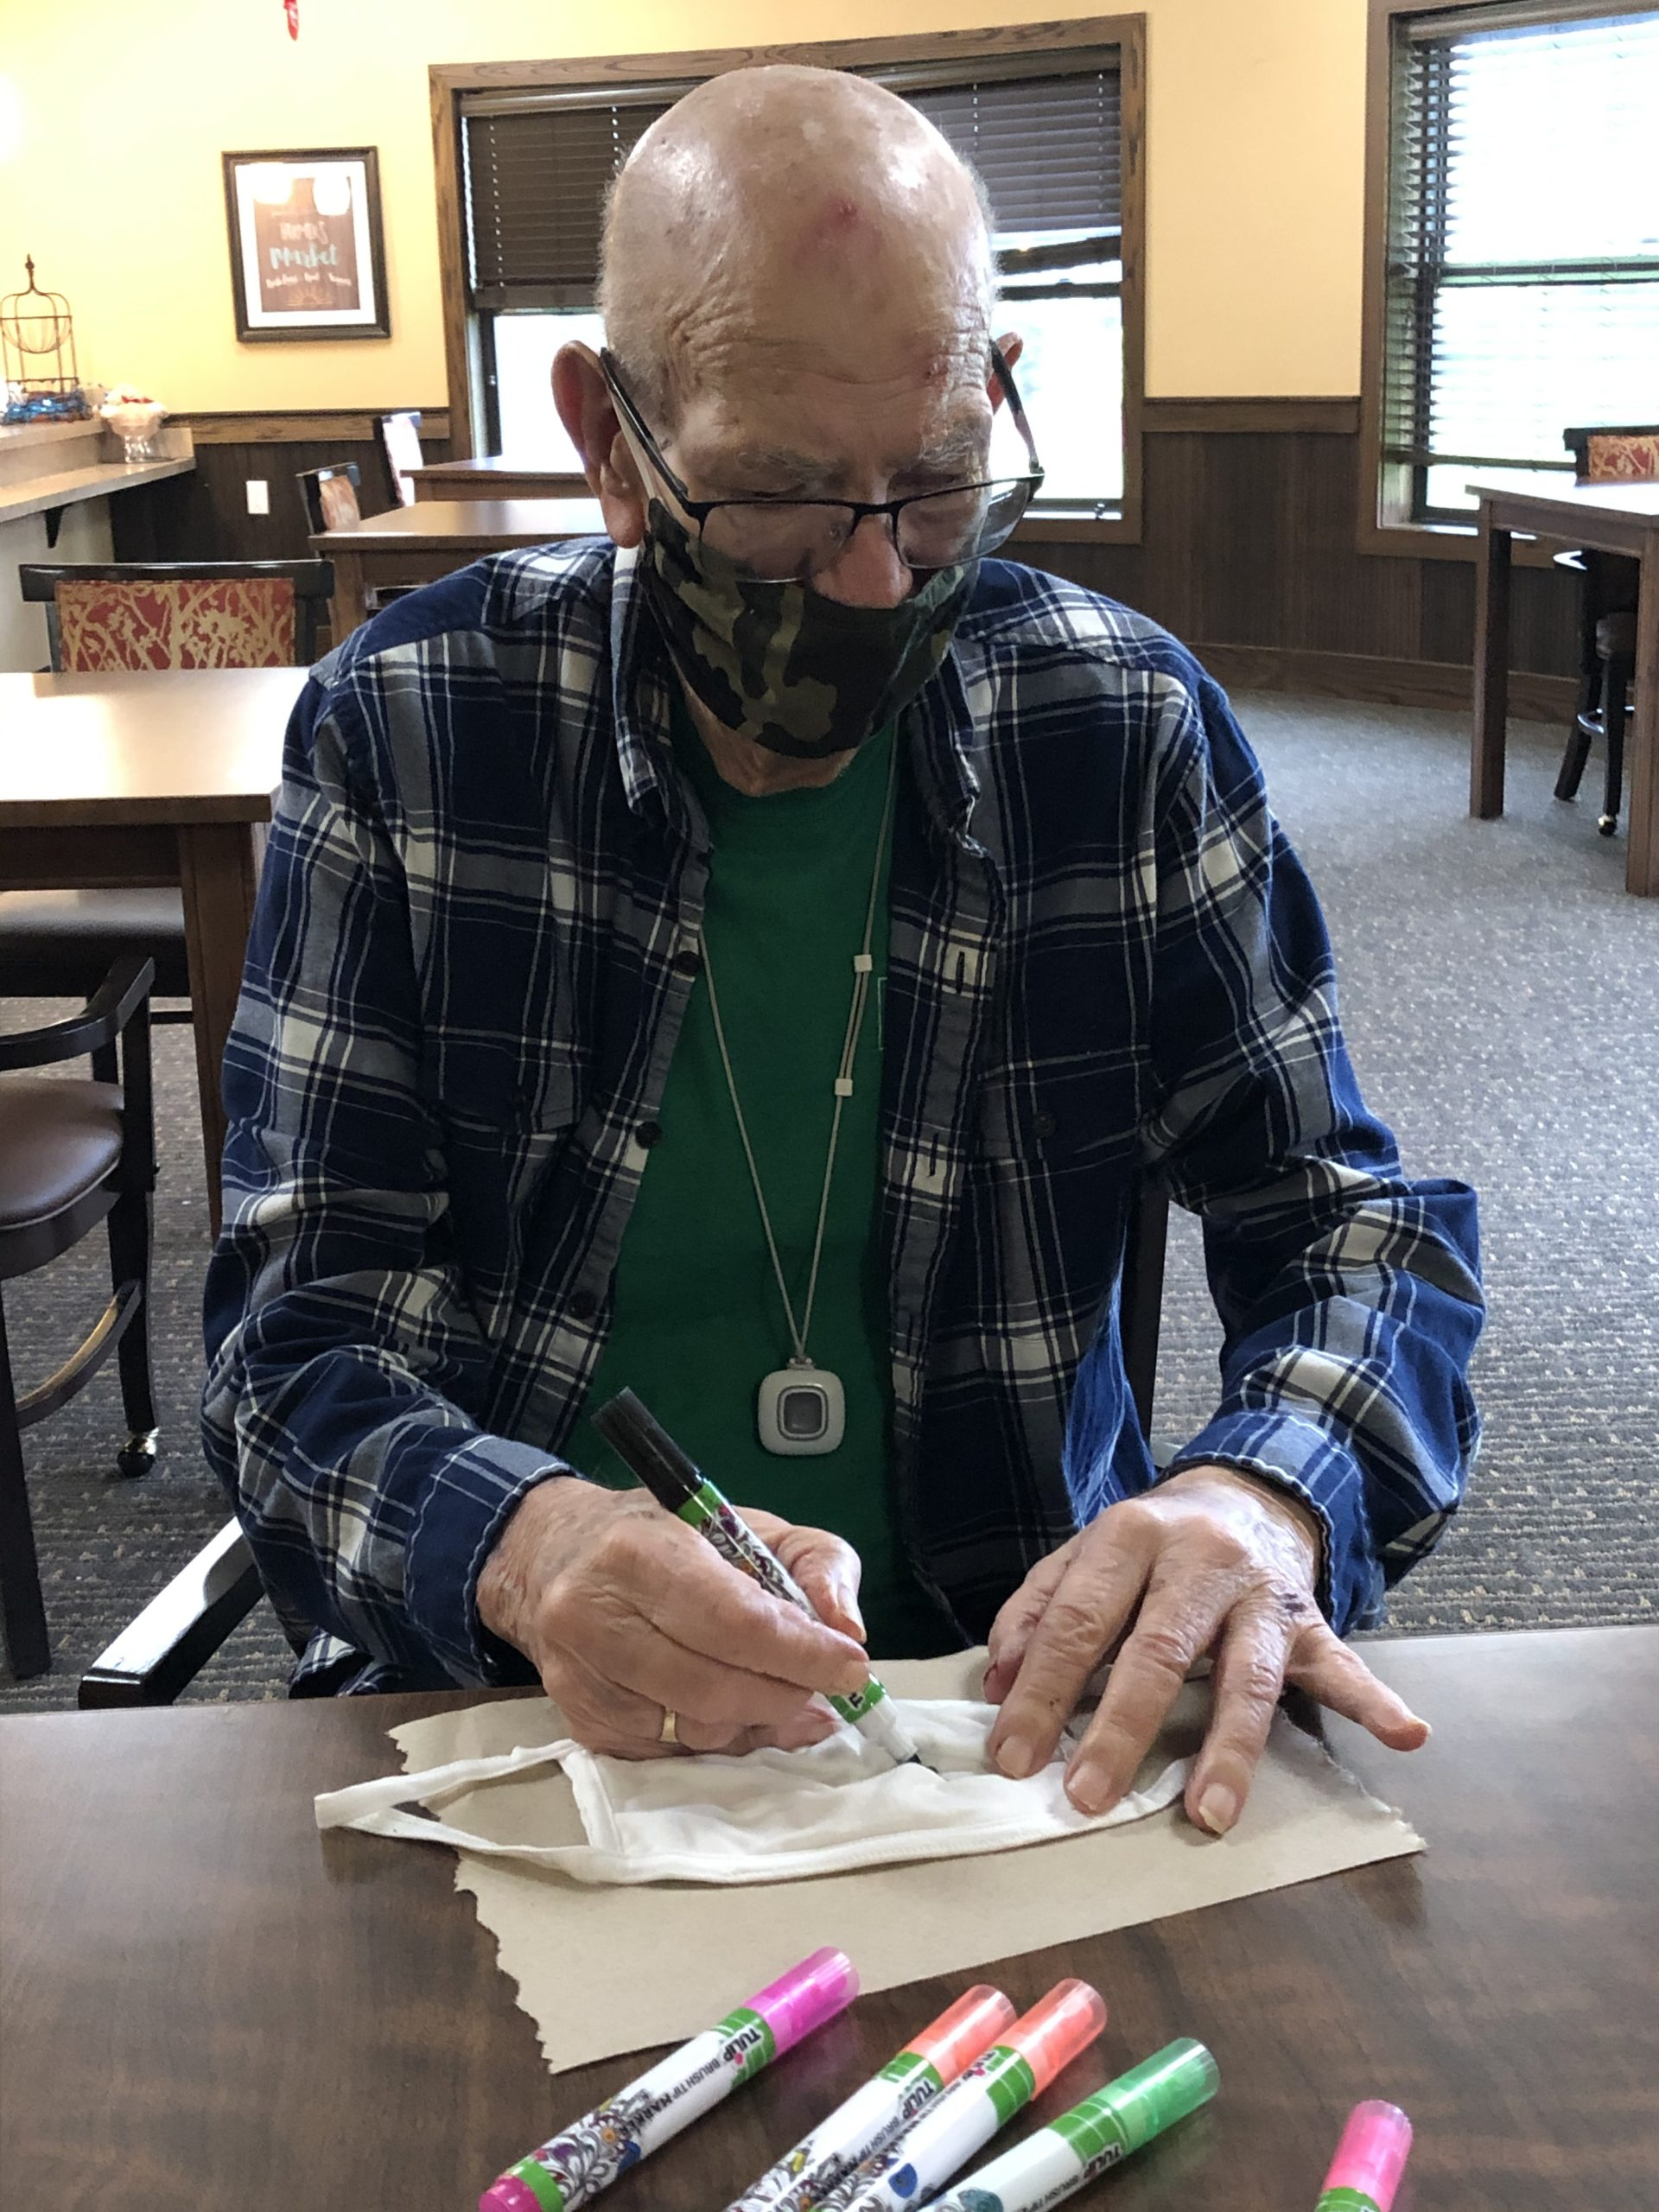 Personalizing our masks makes them much more fun to wear! Bill enjoyed decorating his.